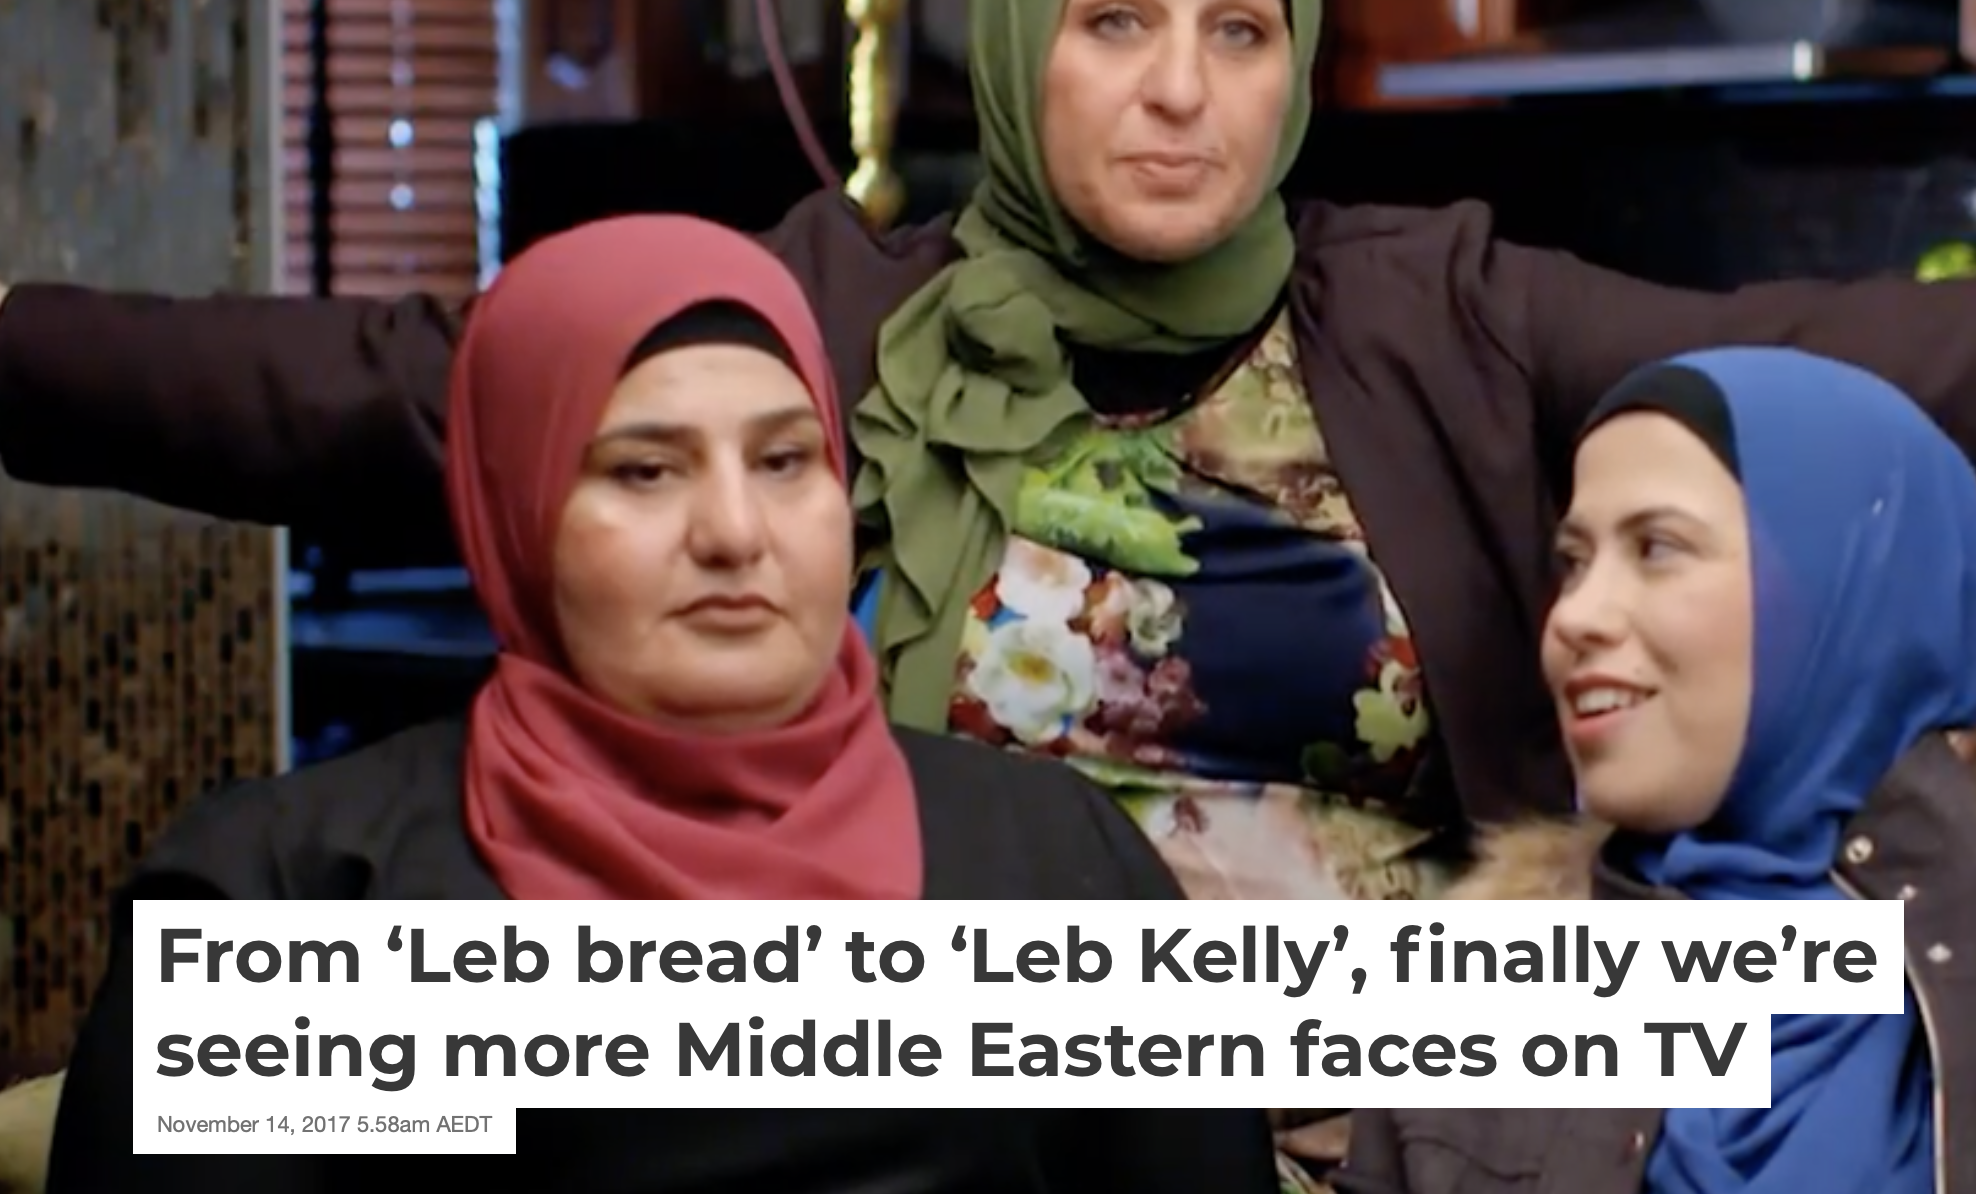 From 'Leb bread' to 'Leb Kelly'